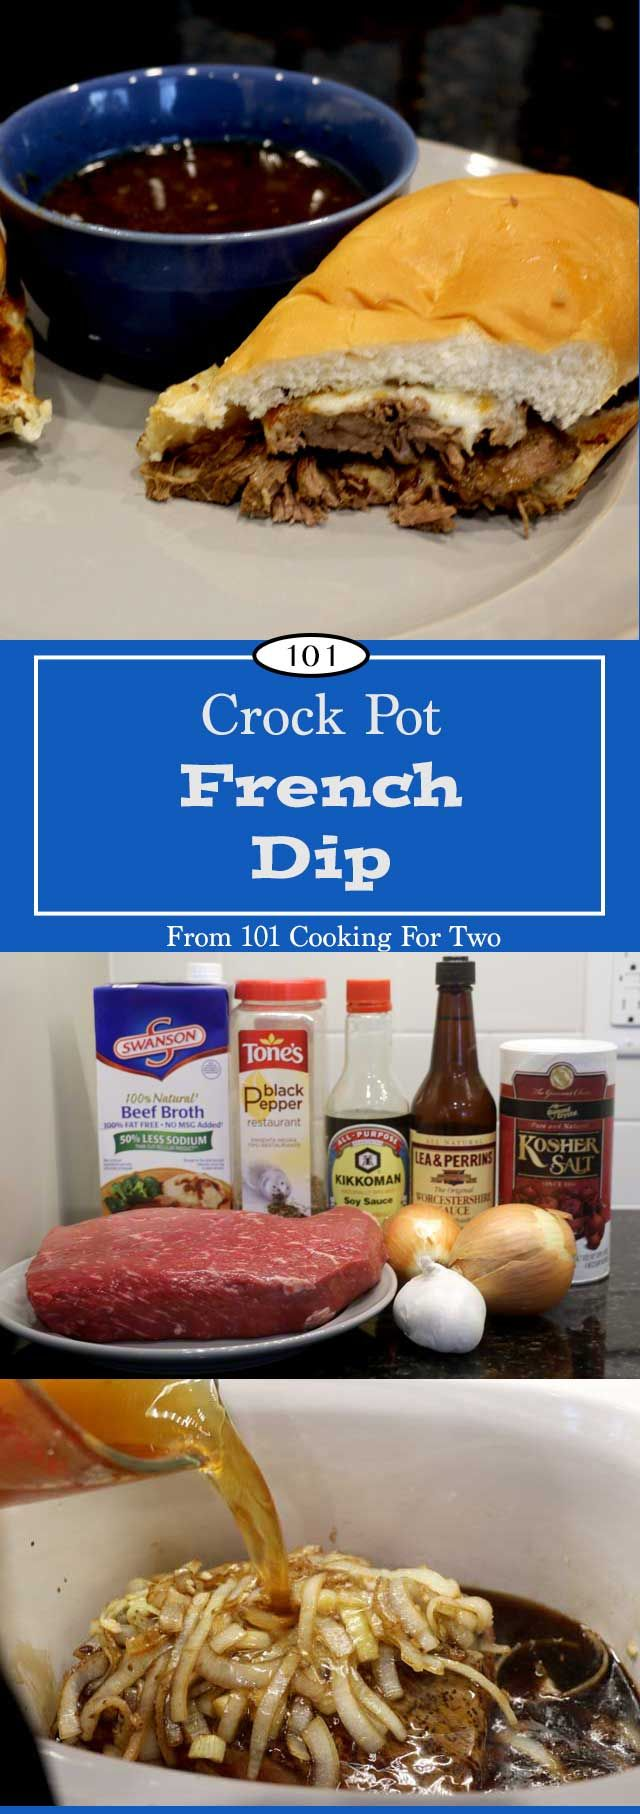 Crock Pot French Dip from 101 Cooking for Two